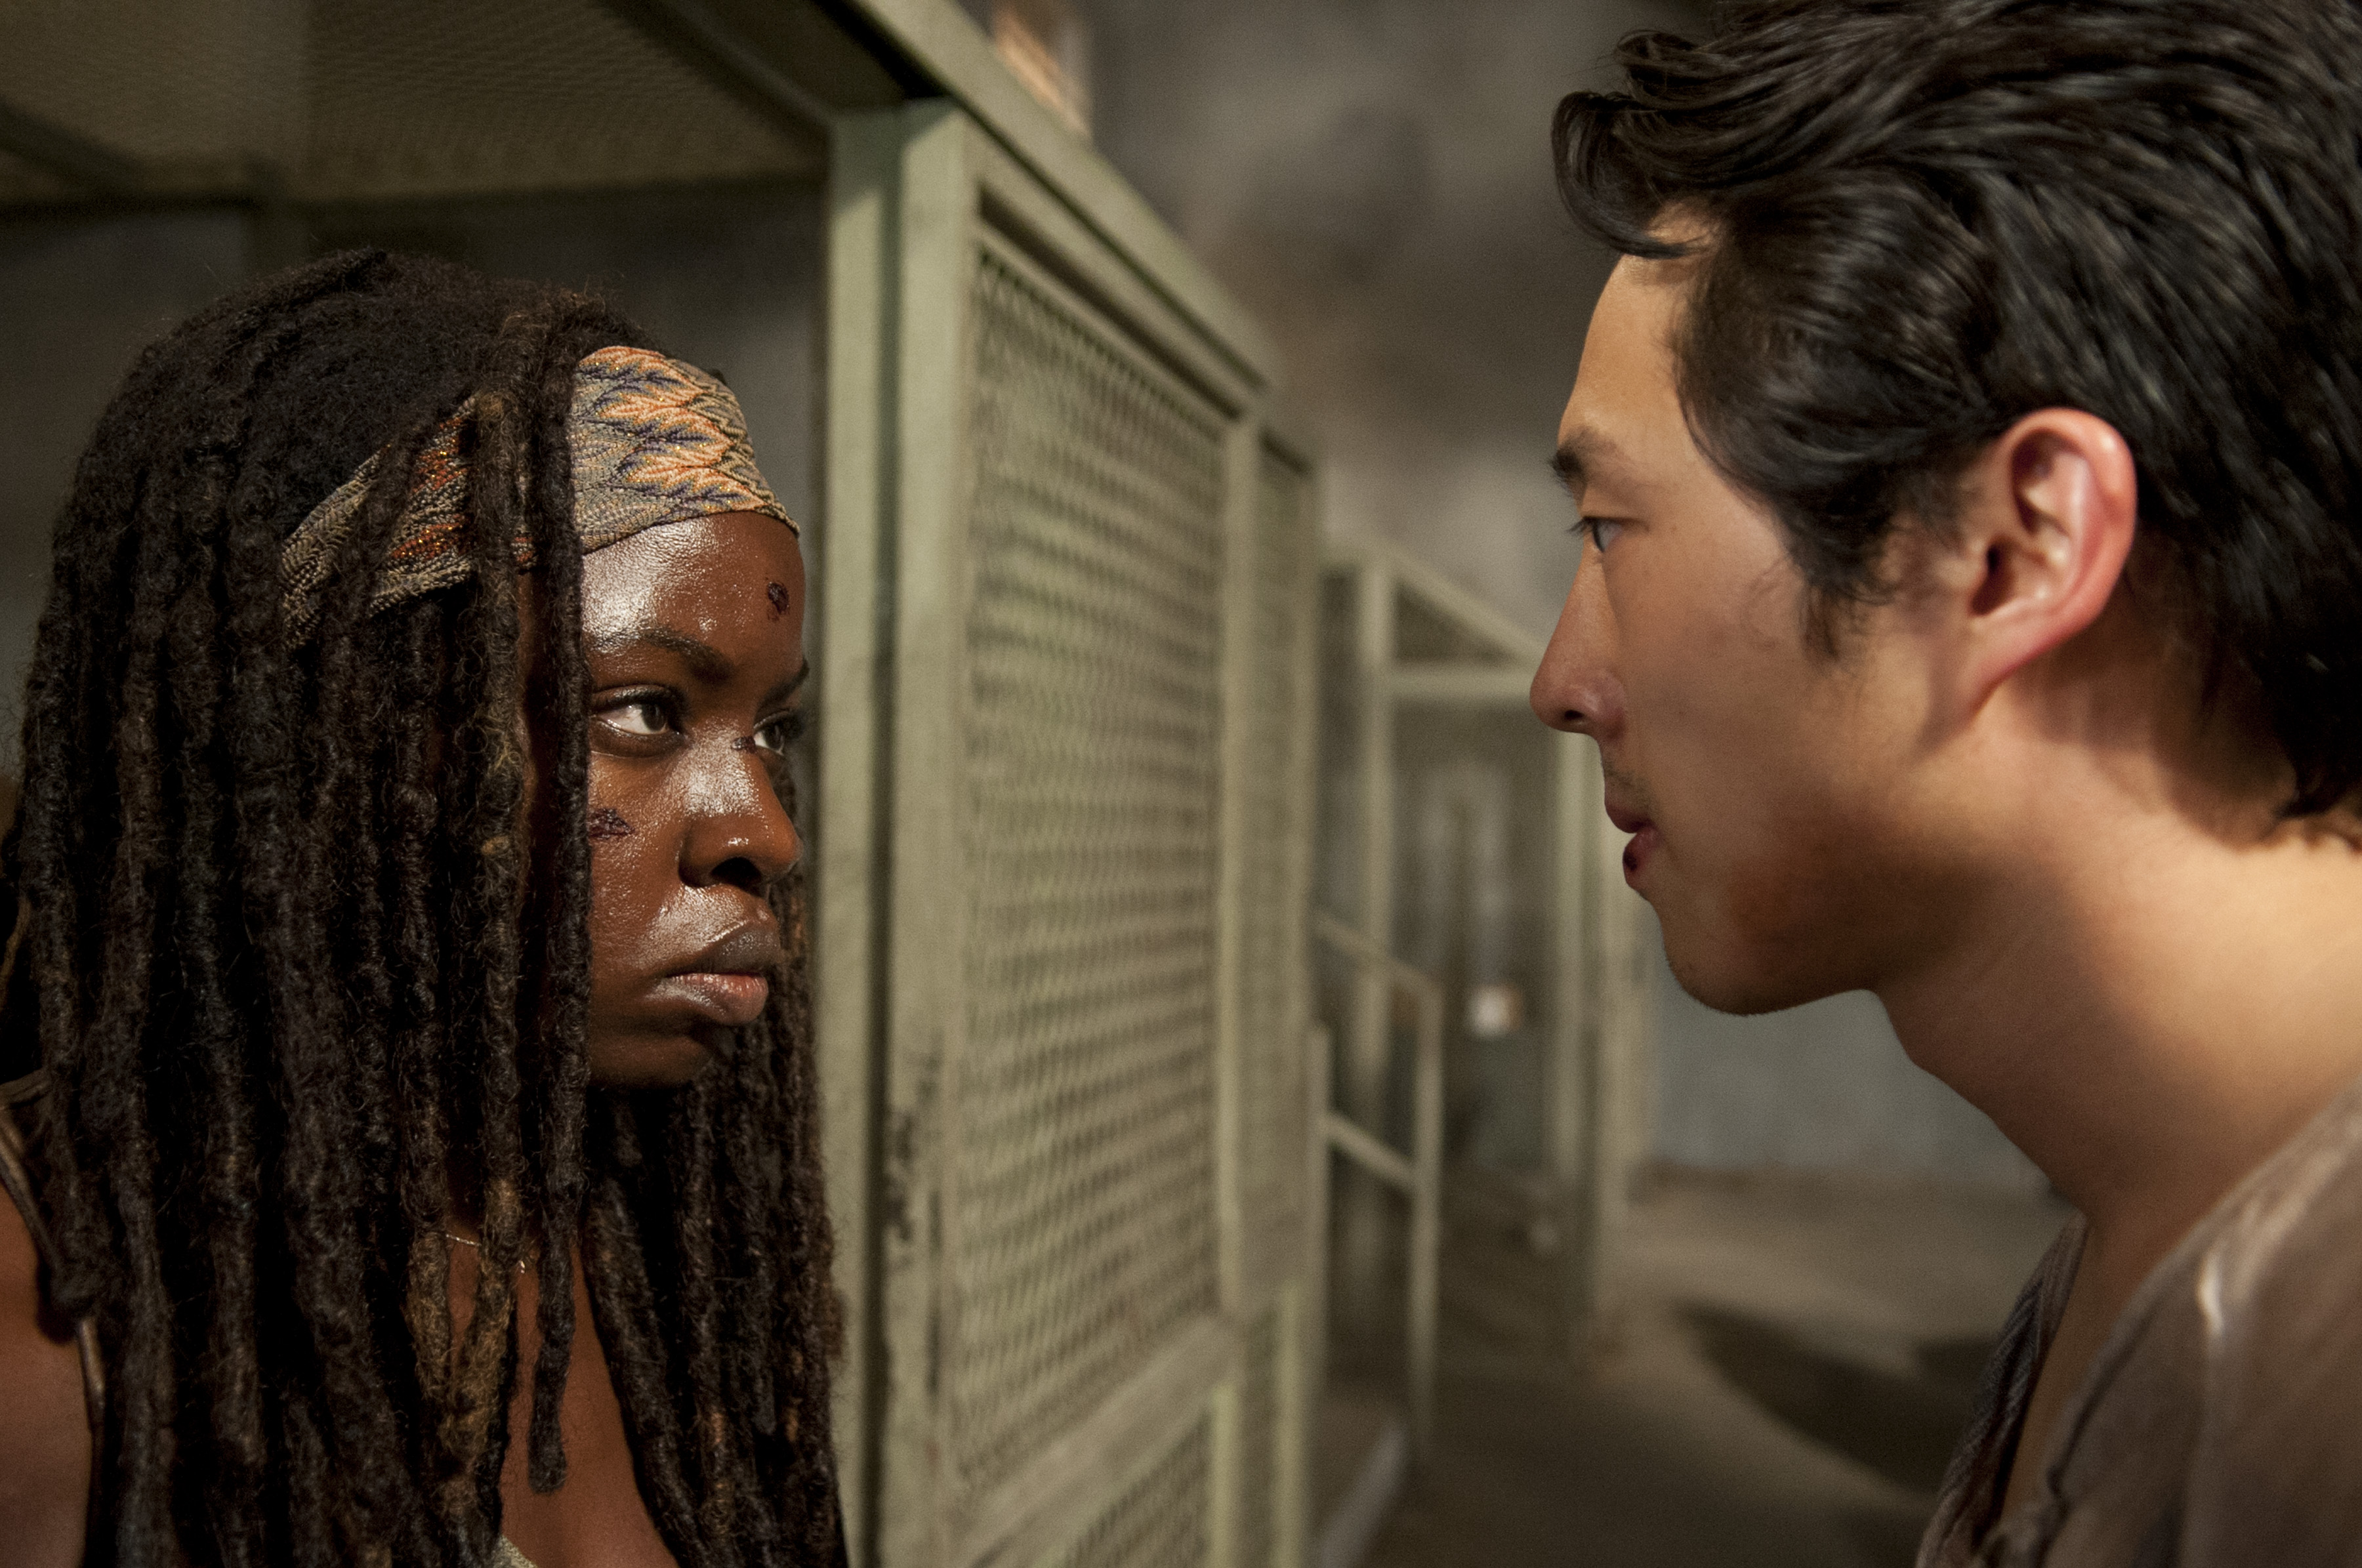 Por dentro de The Walking Dead: Elenco e produtores comentam o episódio 3x10 -